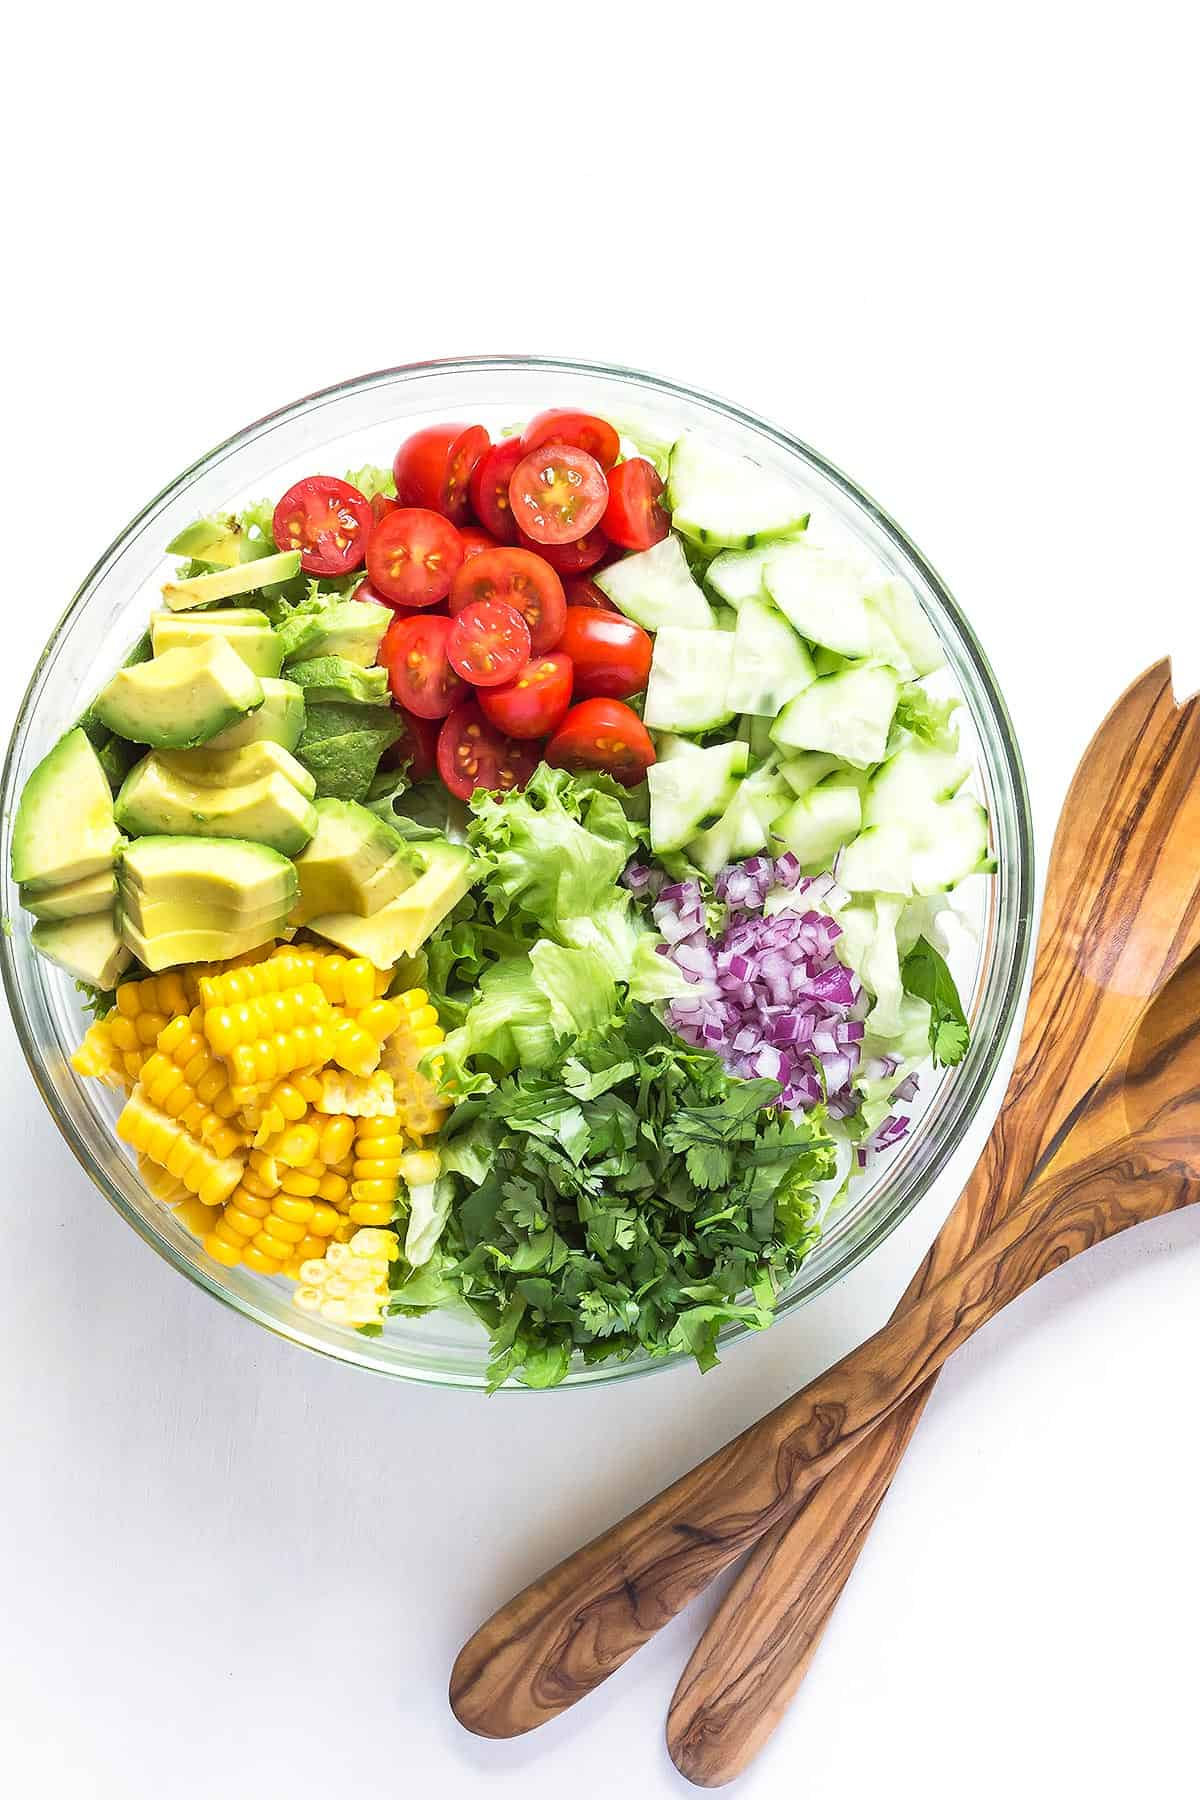 Corn And Avocado Salad ingredients arranged side by side in a bowl